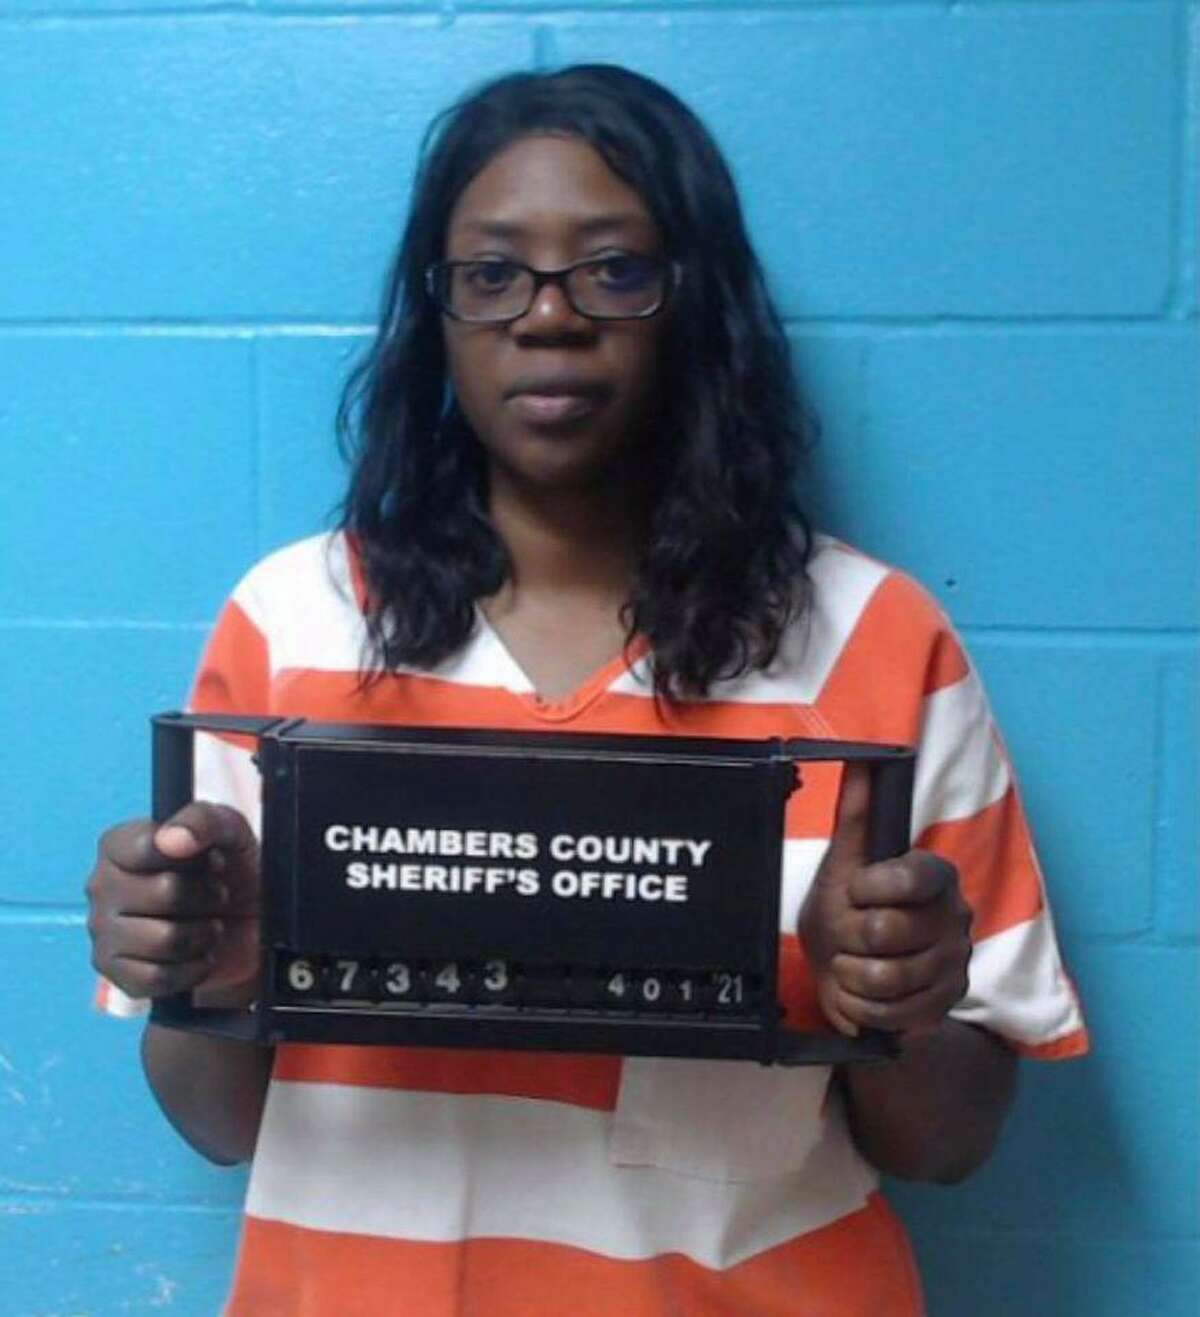 Toccara Greene, of Wallisville, was arrested last week in connection to local and federal investigations.